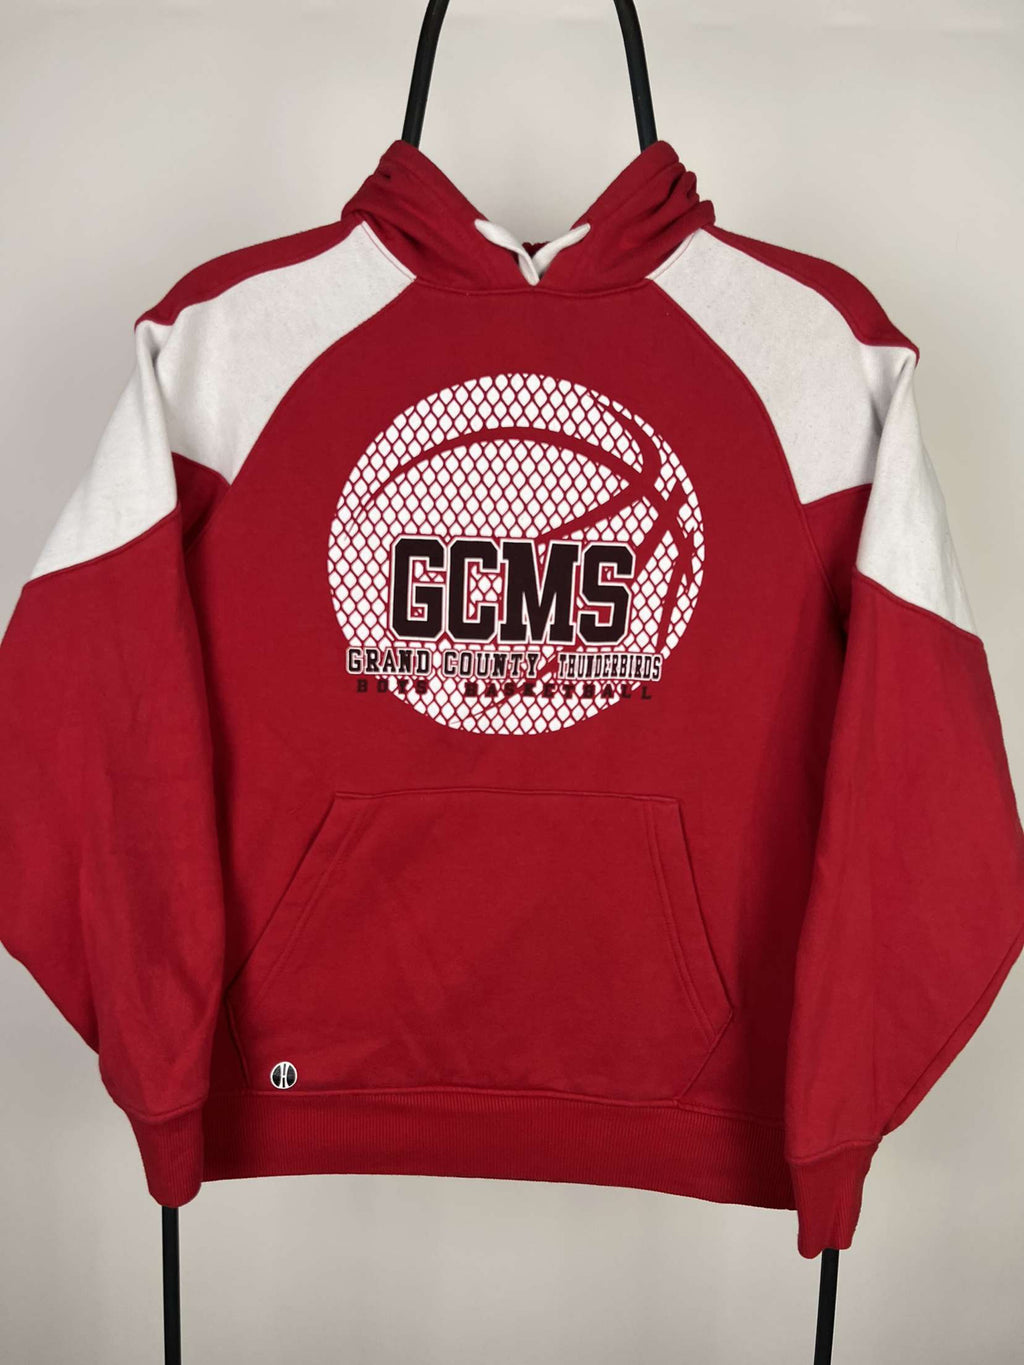 Vintage Atlanta Sweatshirt - Medium